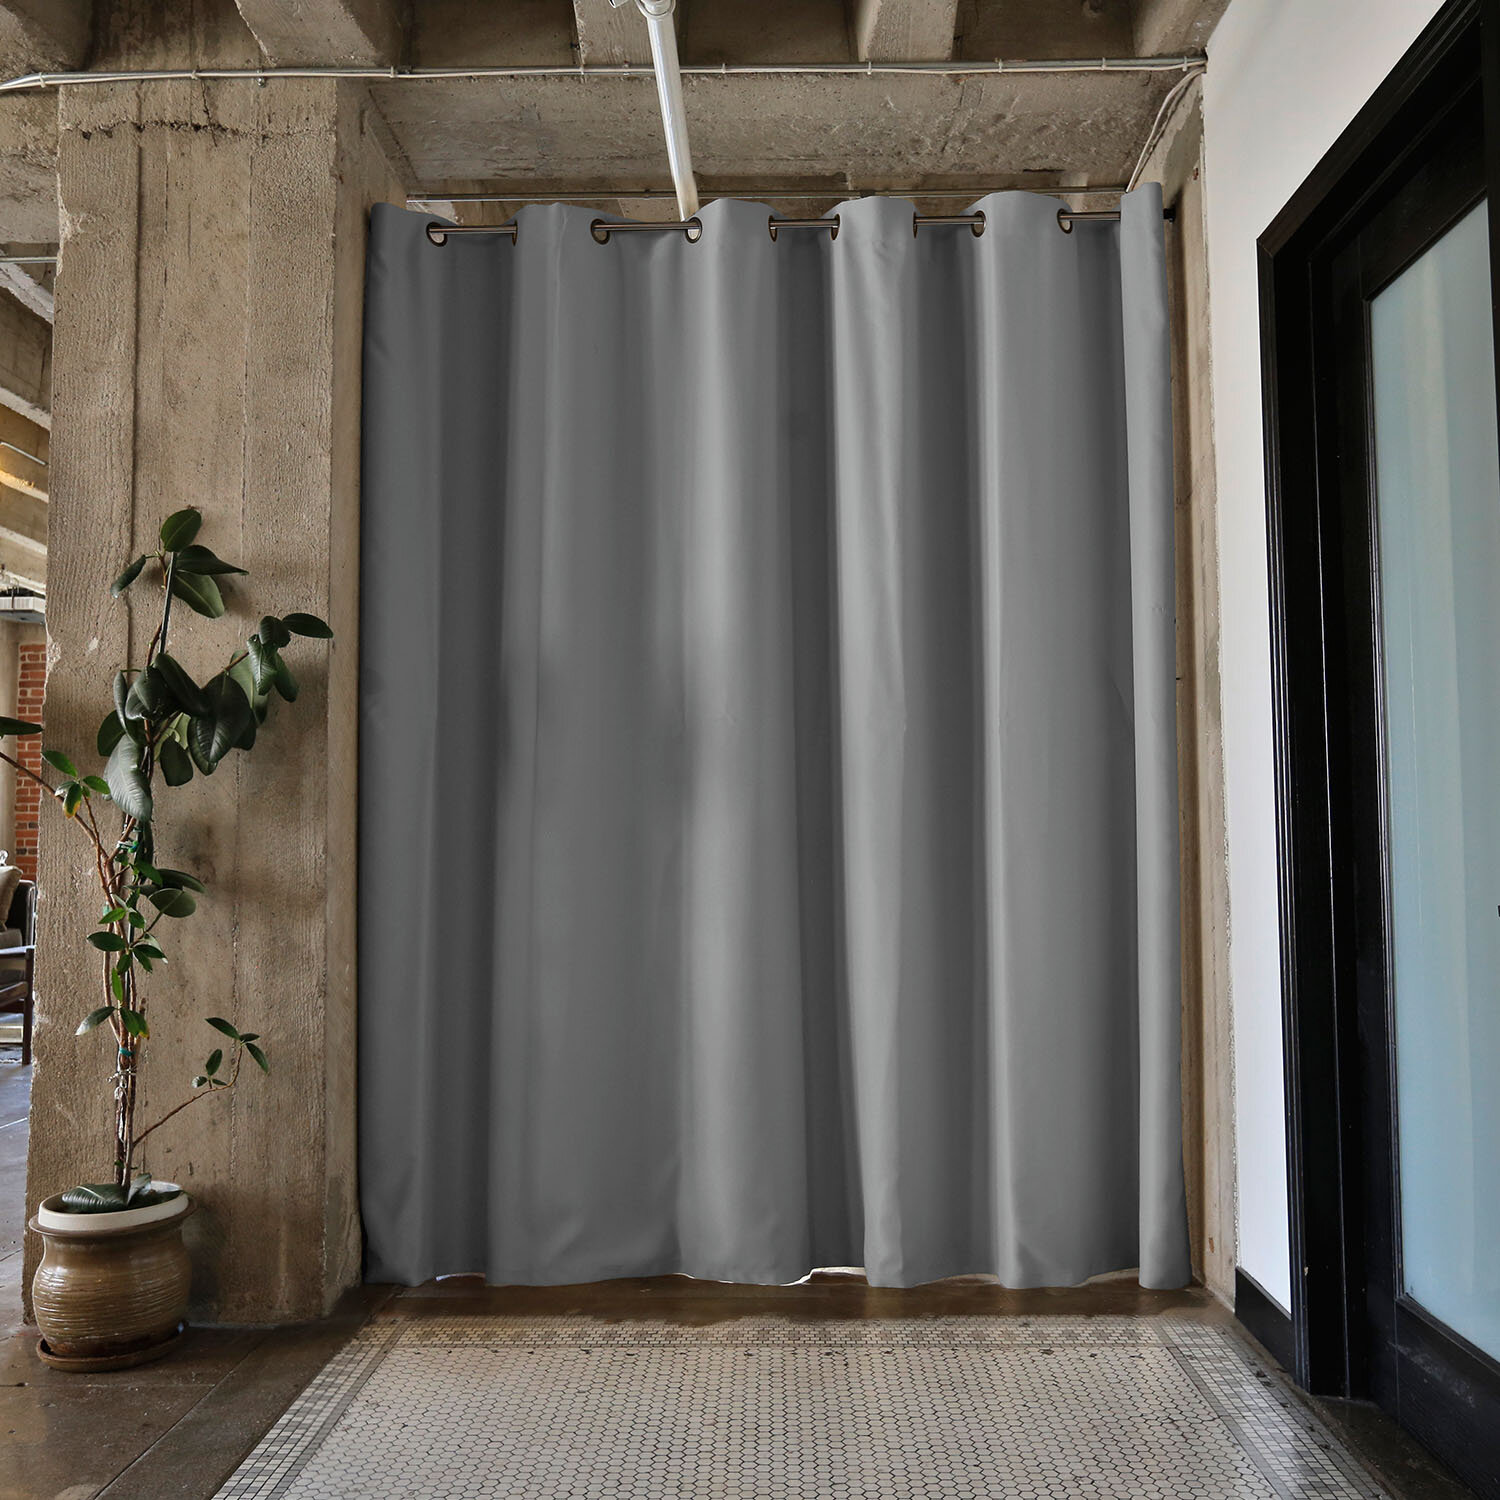 your curtain divider drape intended office for to applied asbienestar co dividers home room decor dazzling design